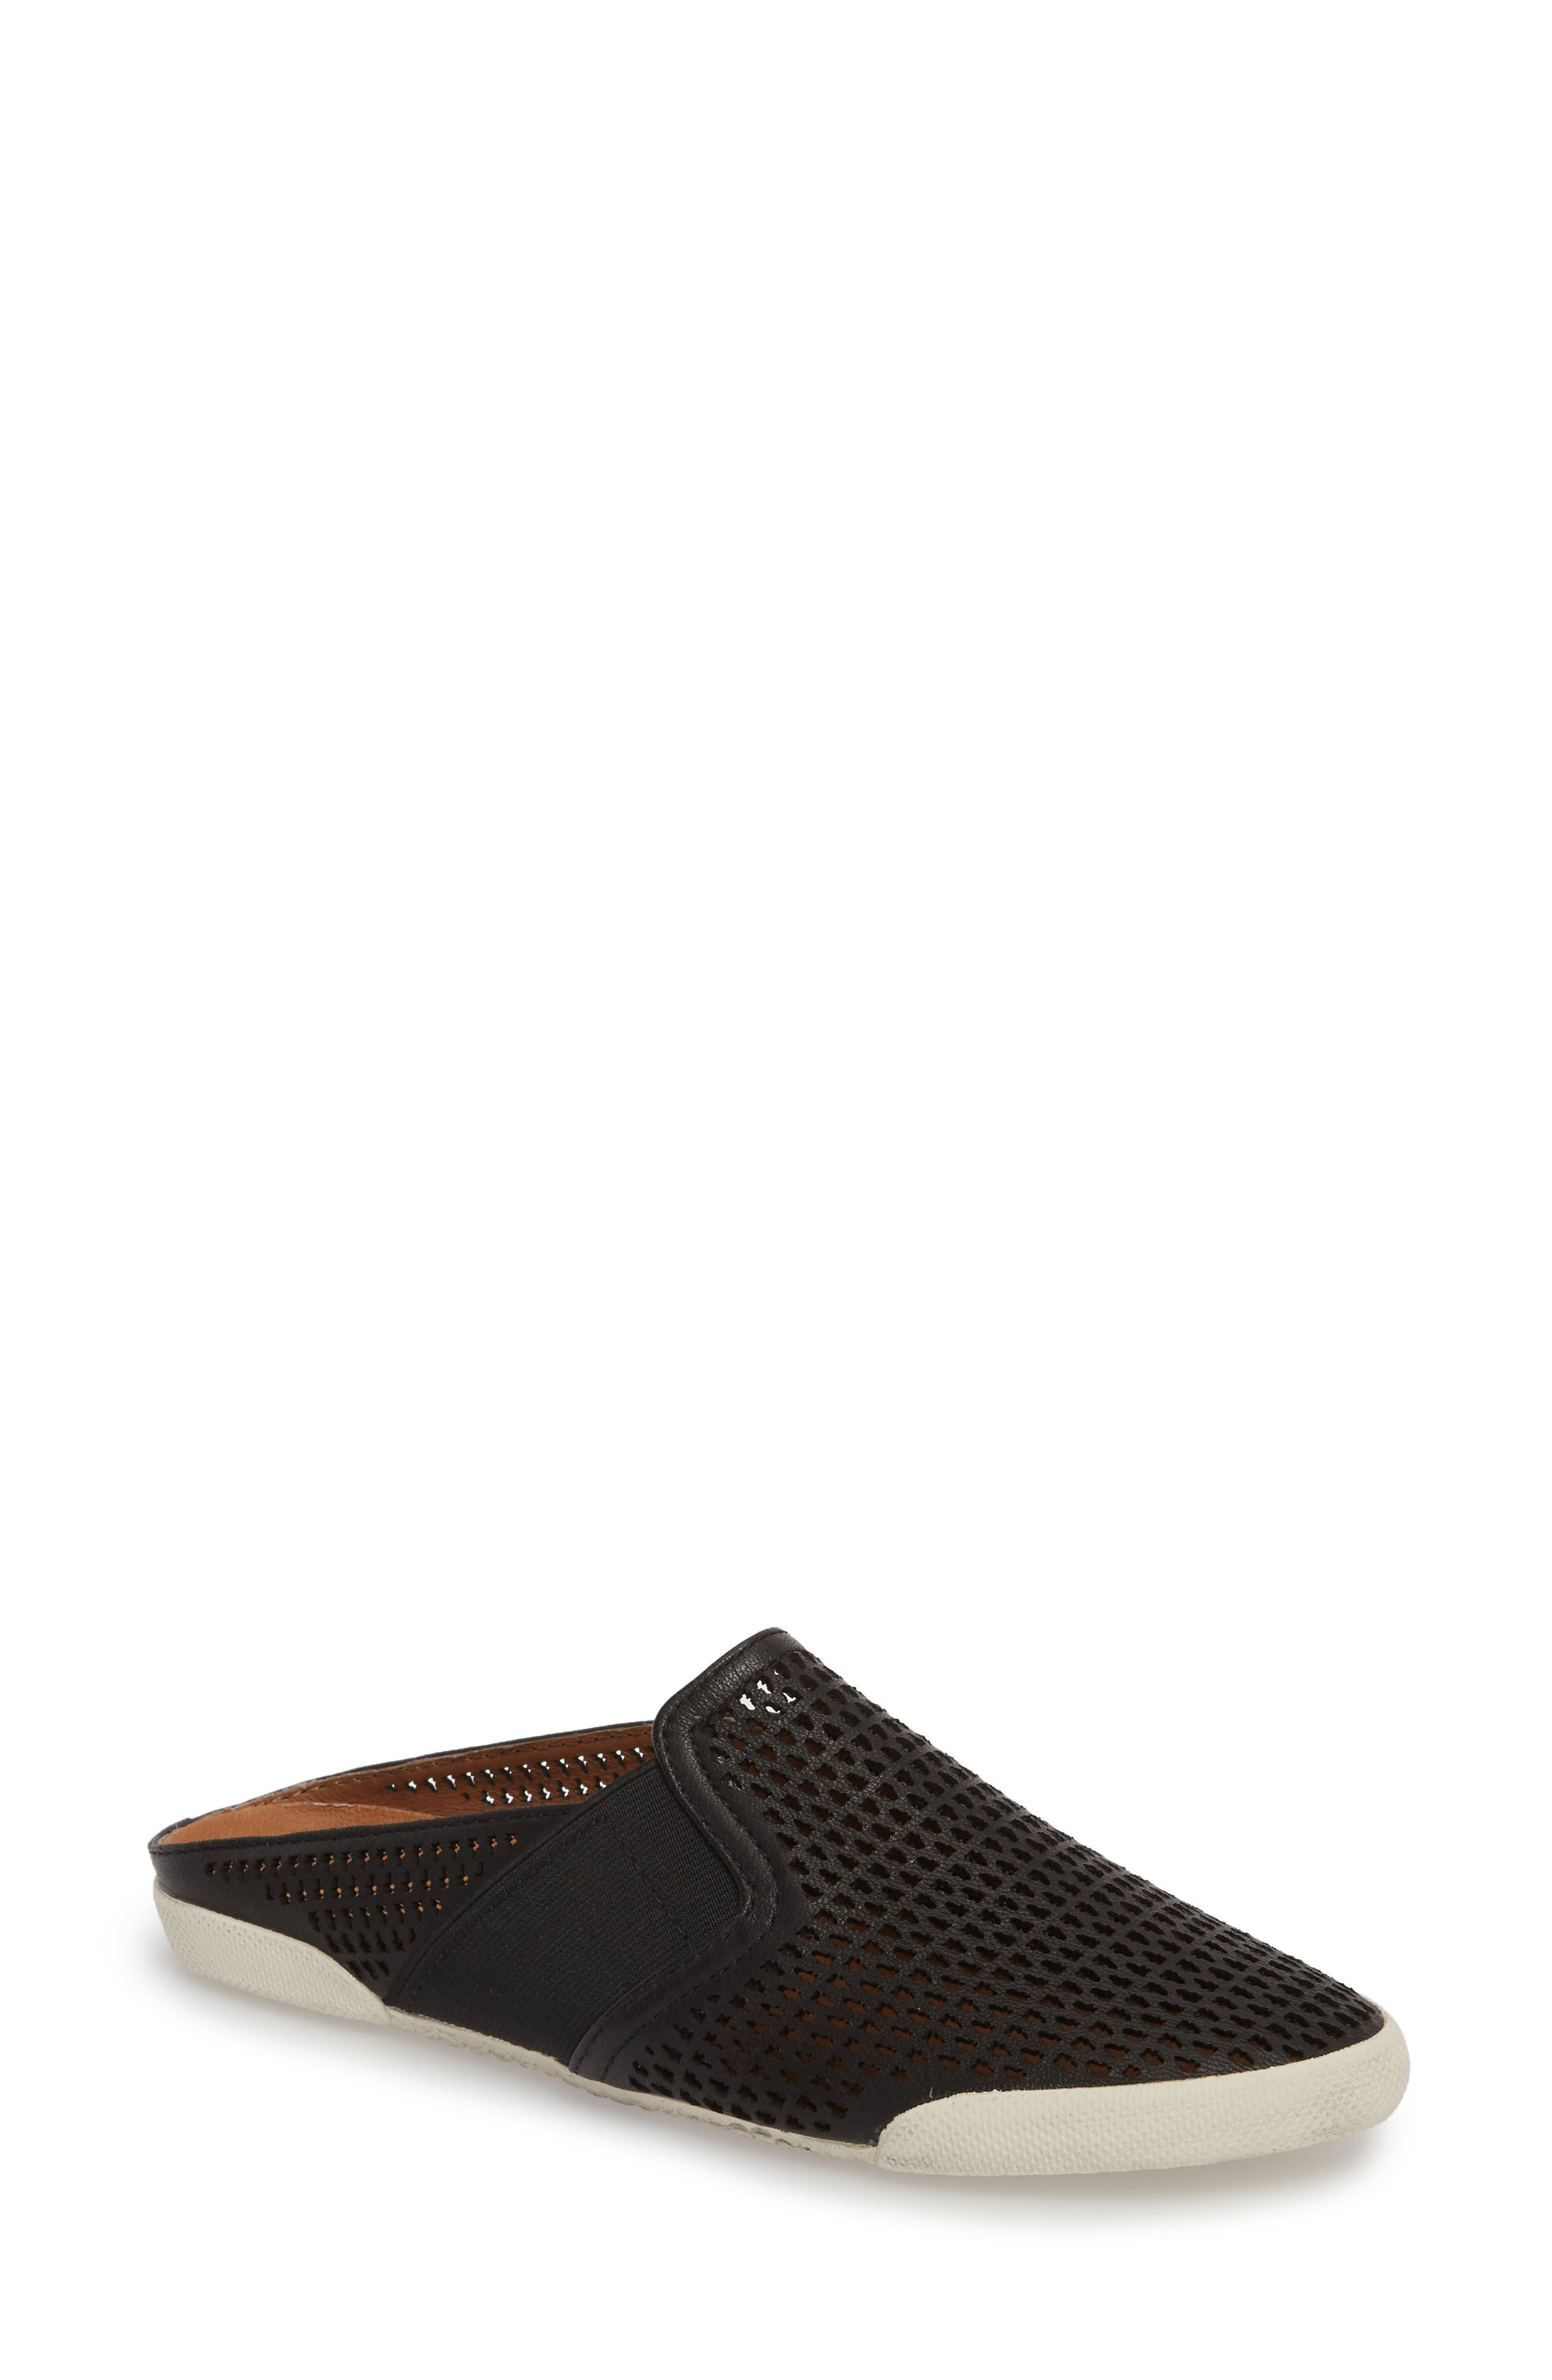 Melanie Perforated Mule,                             Main thumbnail 1, color,                             BLACK LEATHER